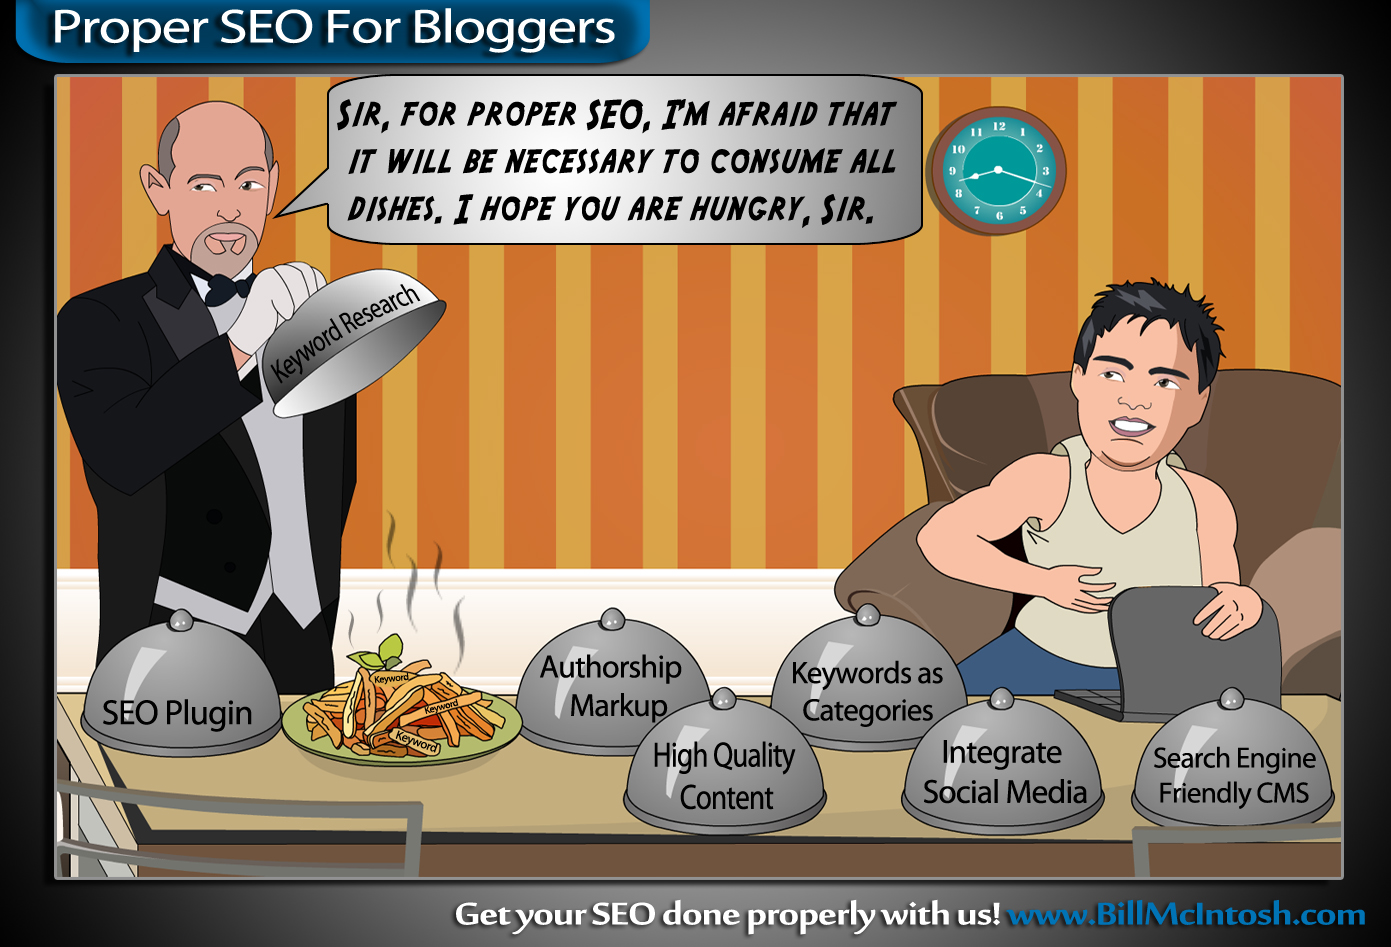 Proper SEO for Bloggers